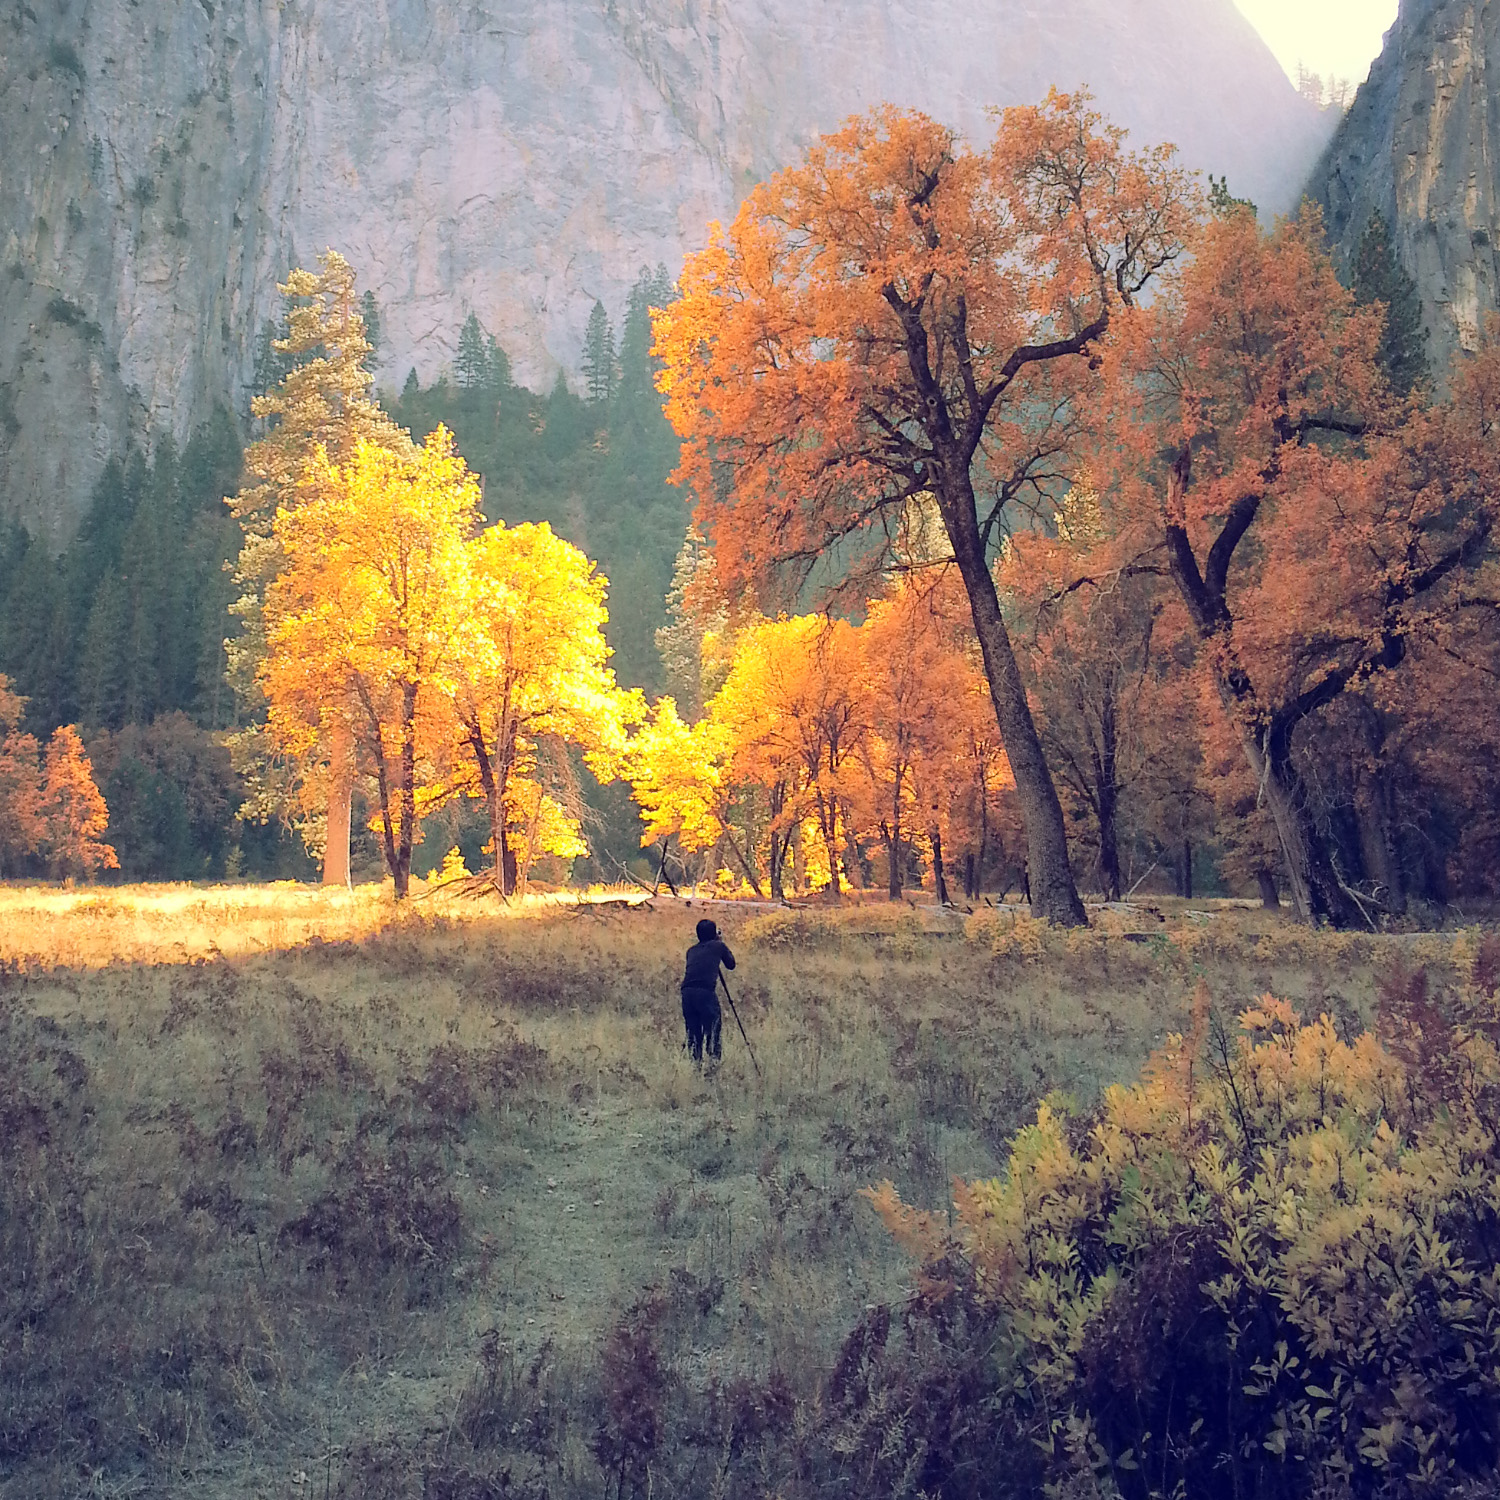 Yosemite National Park. Image taken by Michelle Wong.